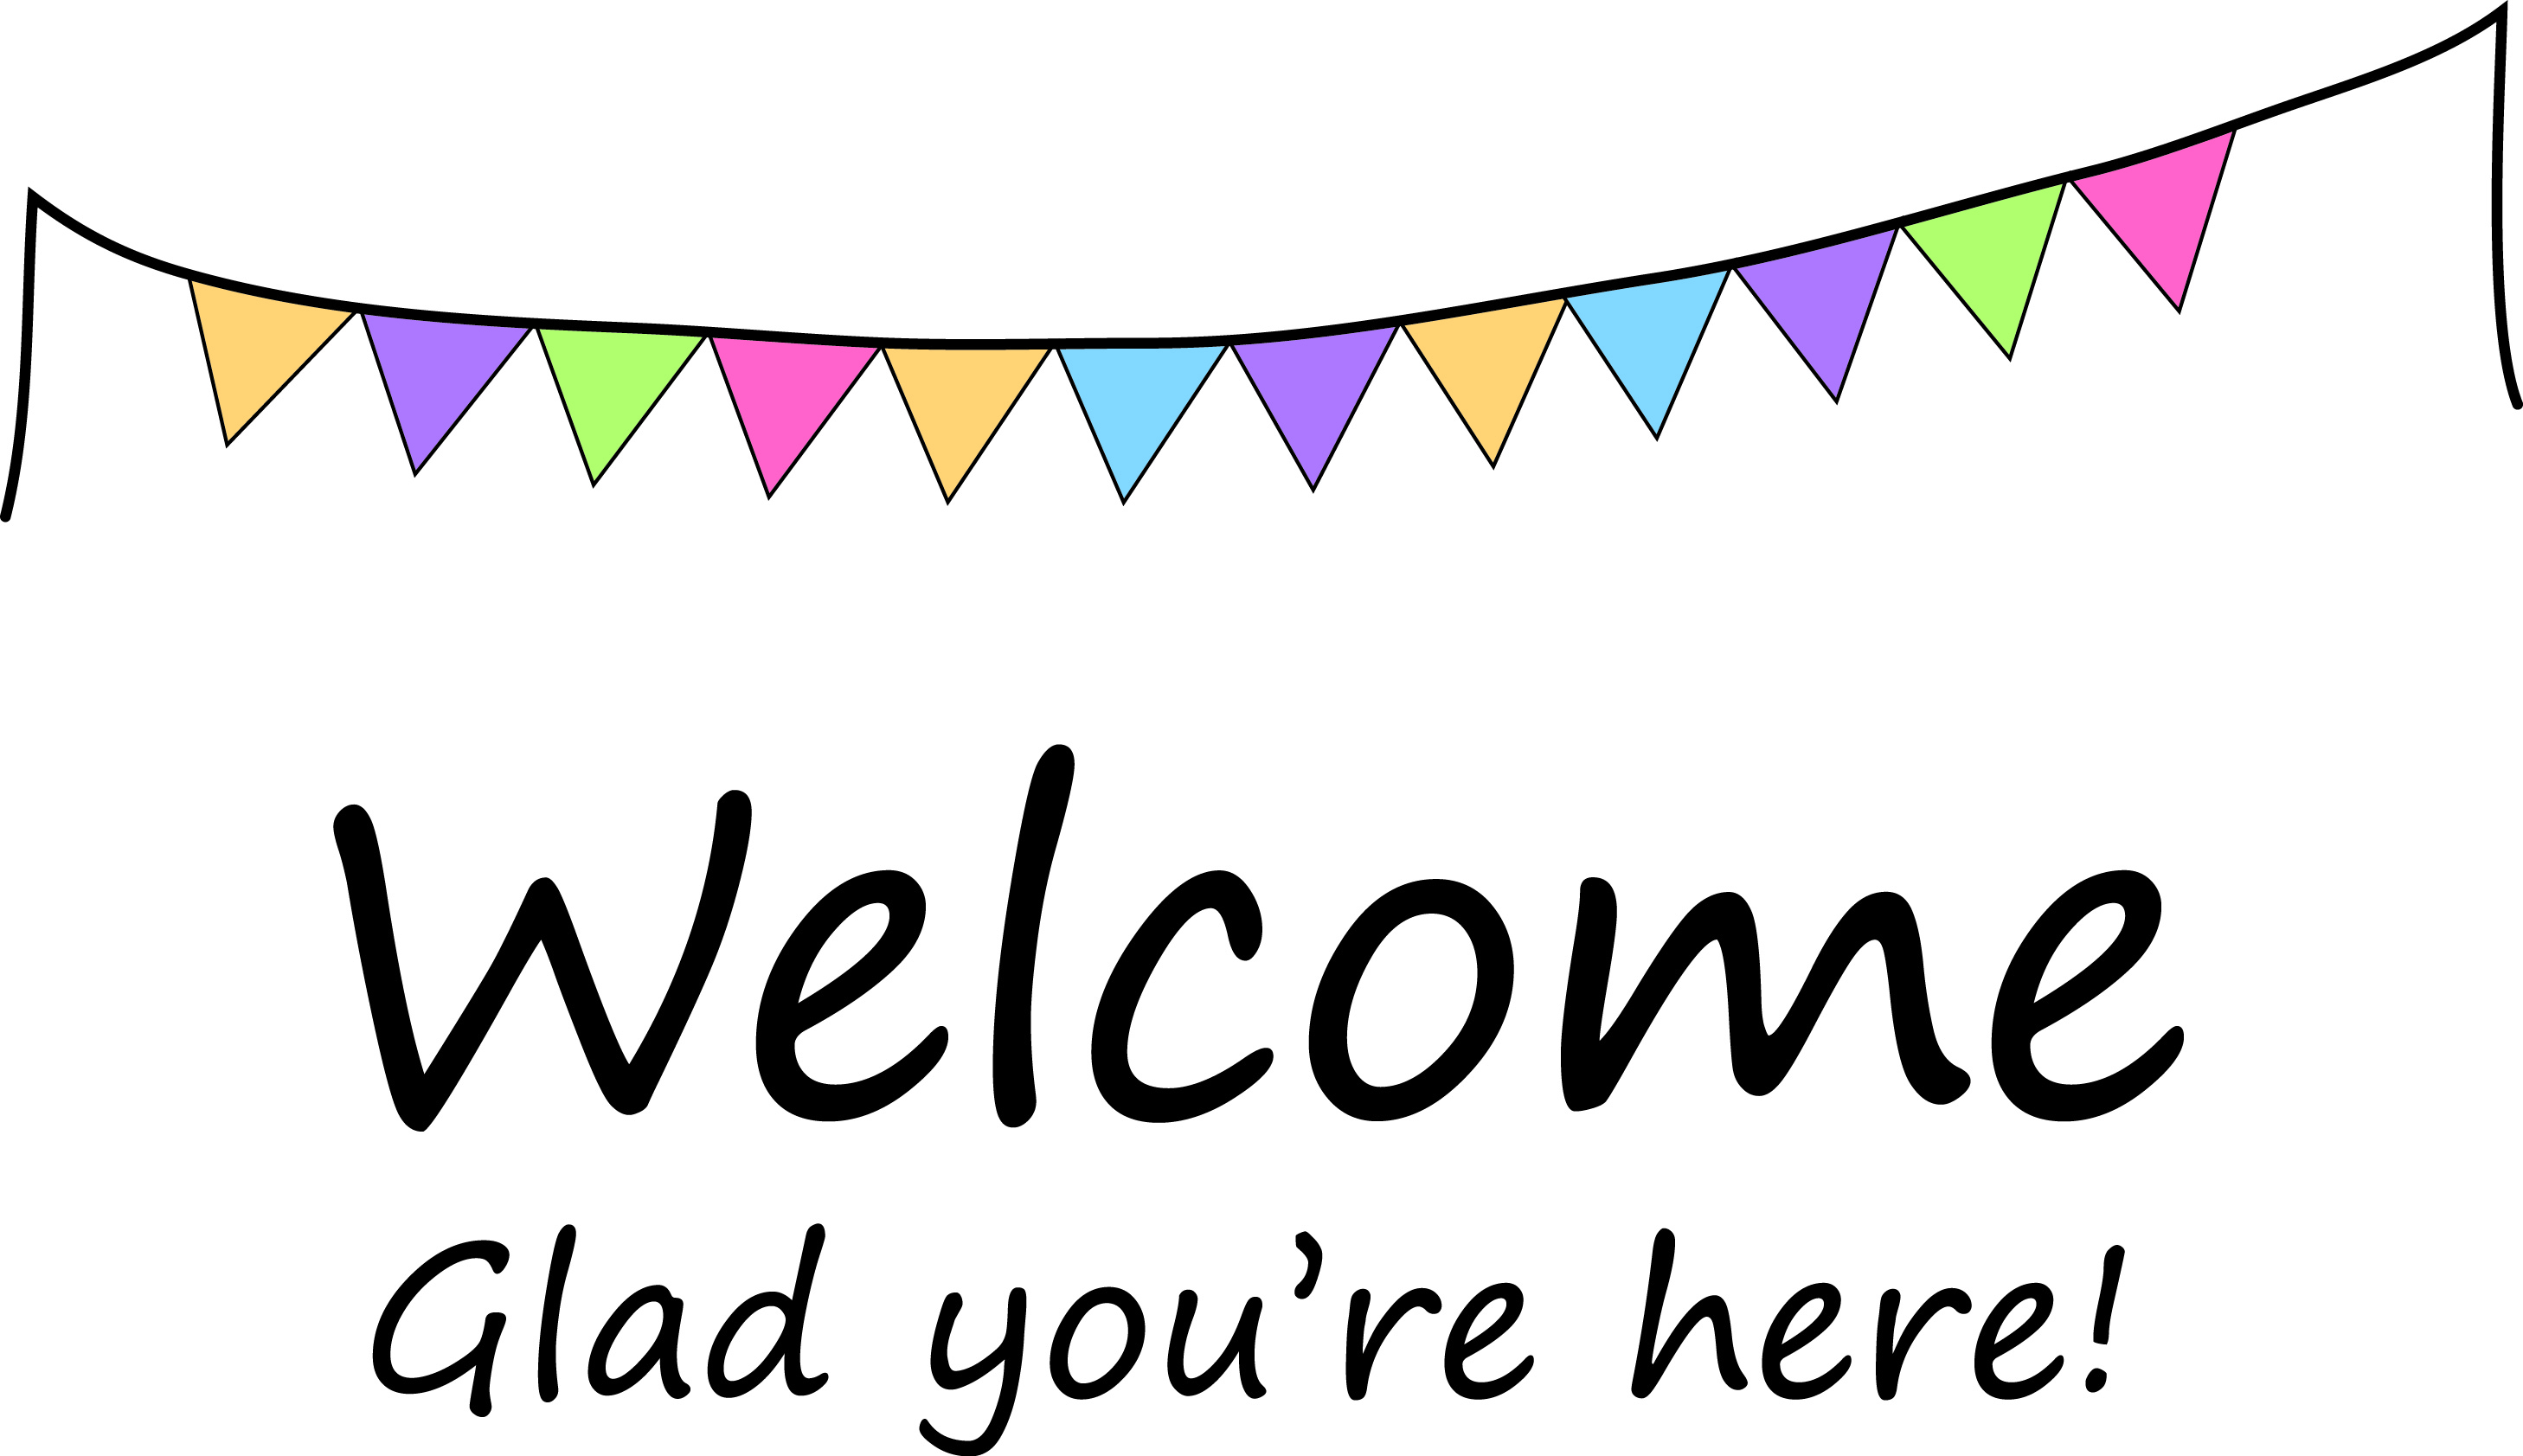 photograph regarding Welcome Back Signs Printable known as Free of charge Printable Welcome Back again Indicator Totally free obtain least complicated No cost